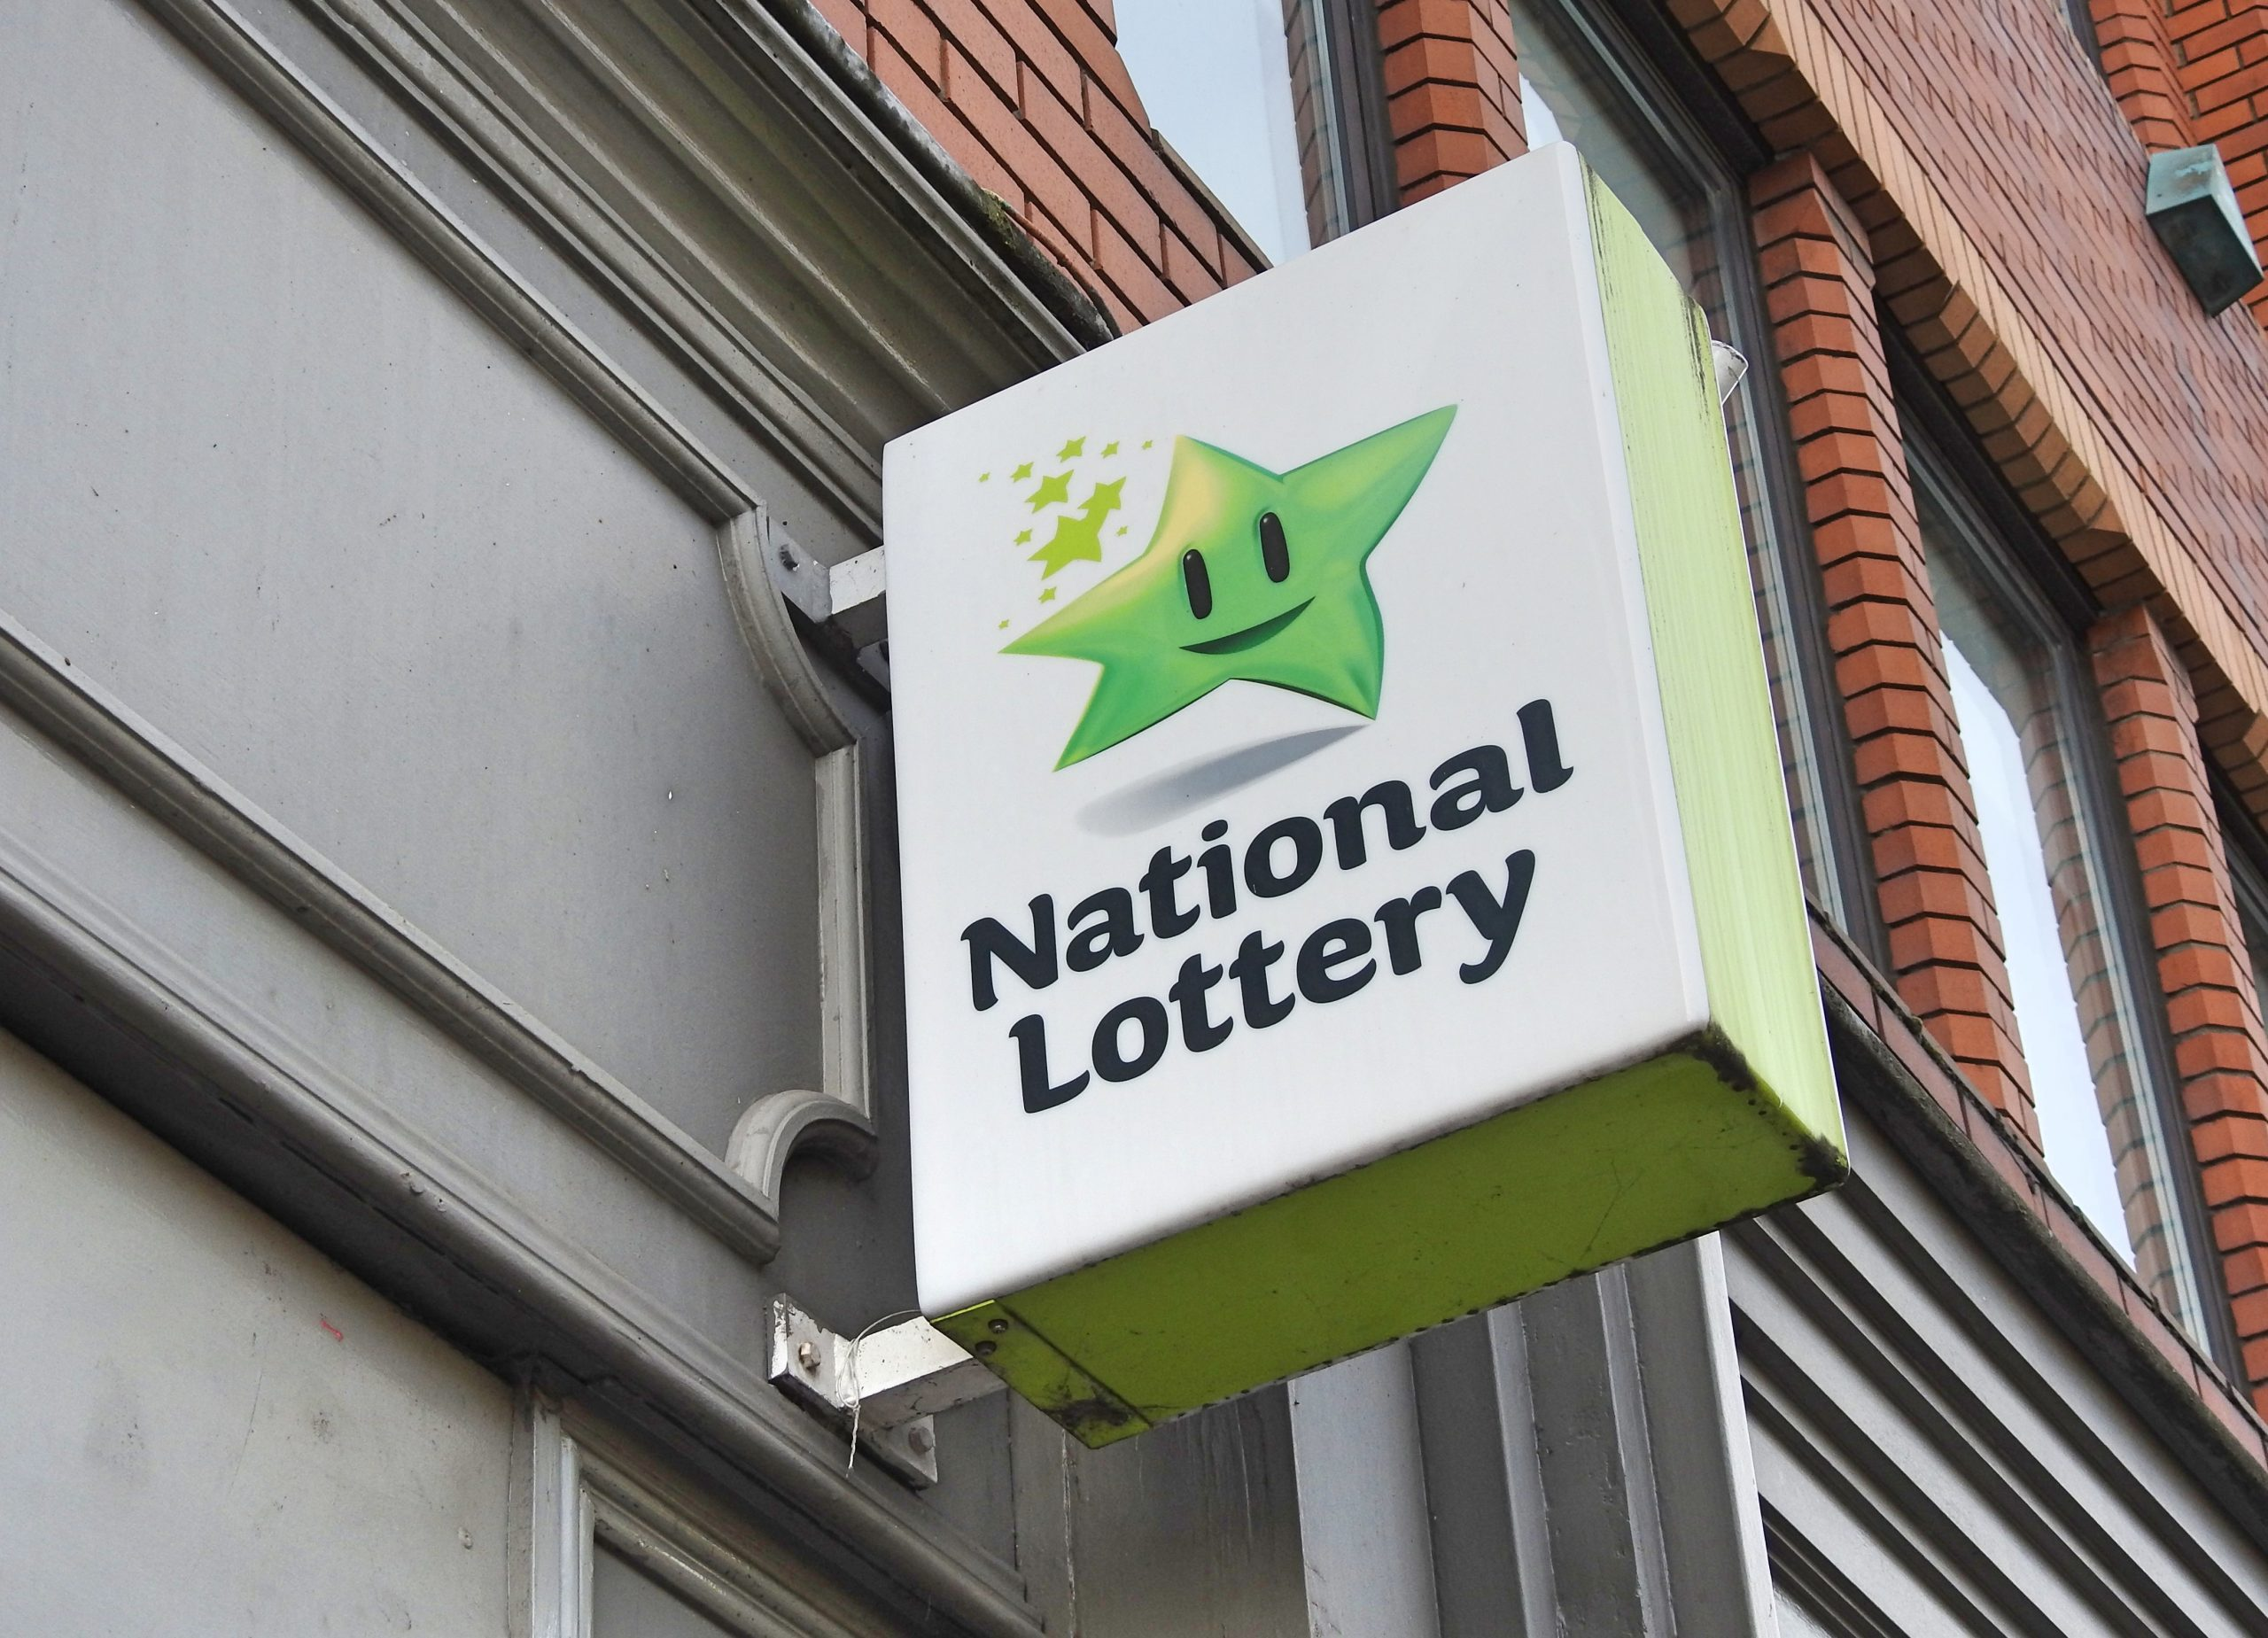 Stop bookies taking bets on National Lottery draws, says RGDATA